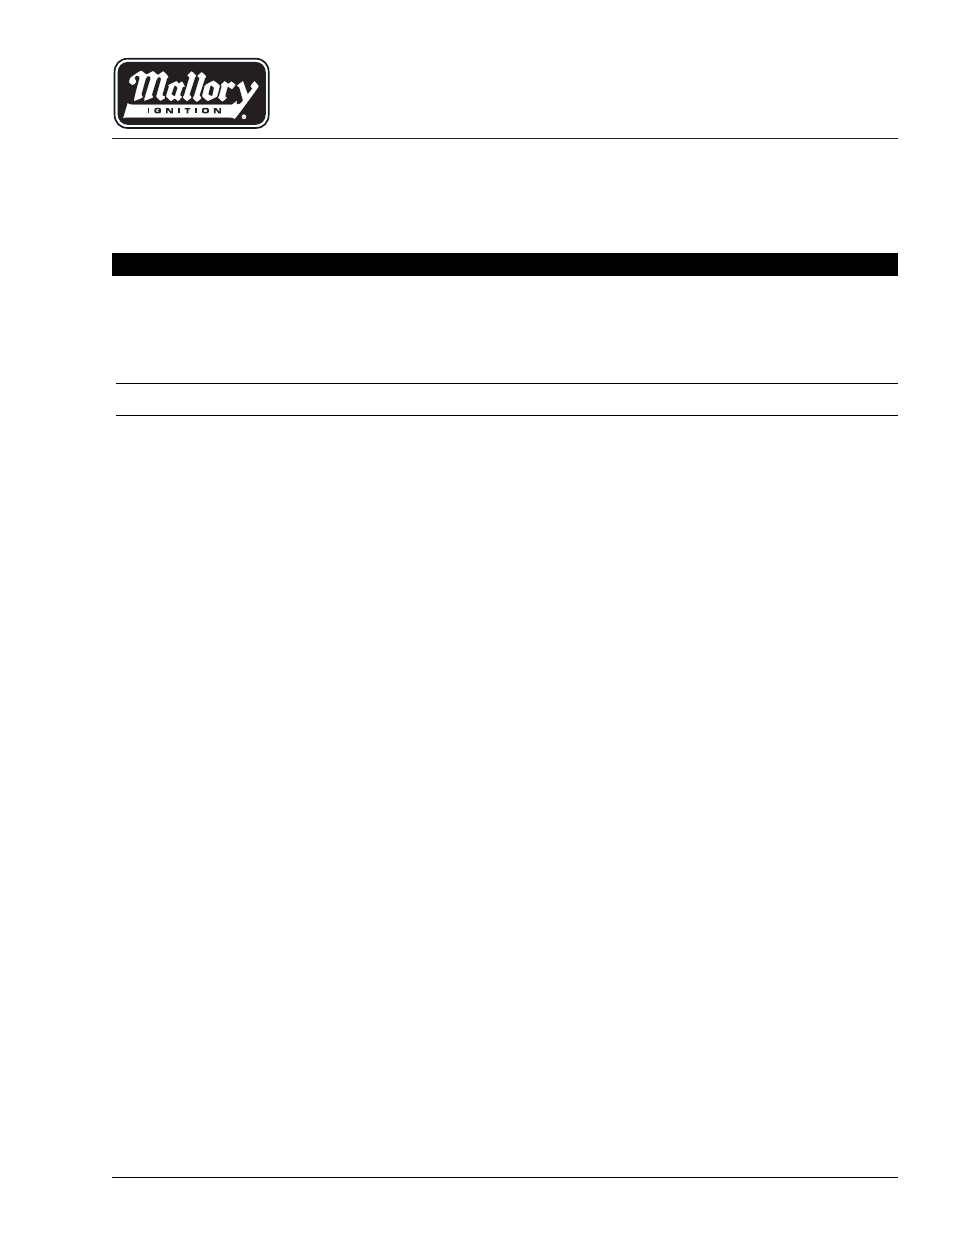 mallory ignition mallory unilite distributor page1 mallory ignition mallory unilite distributor user manual 13 mallory dist wiring diagram at reclaimingppi.co